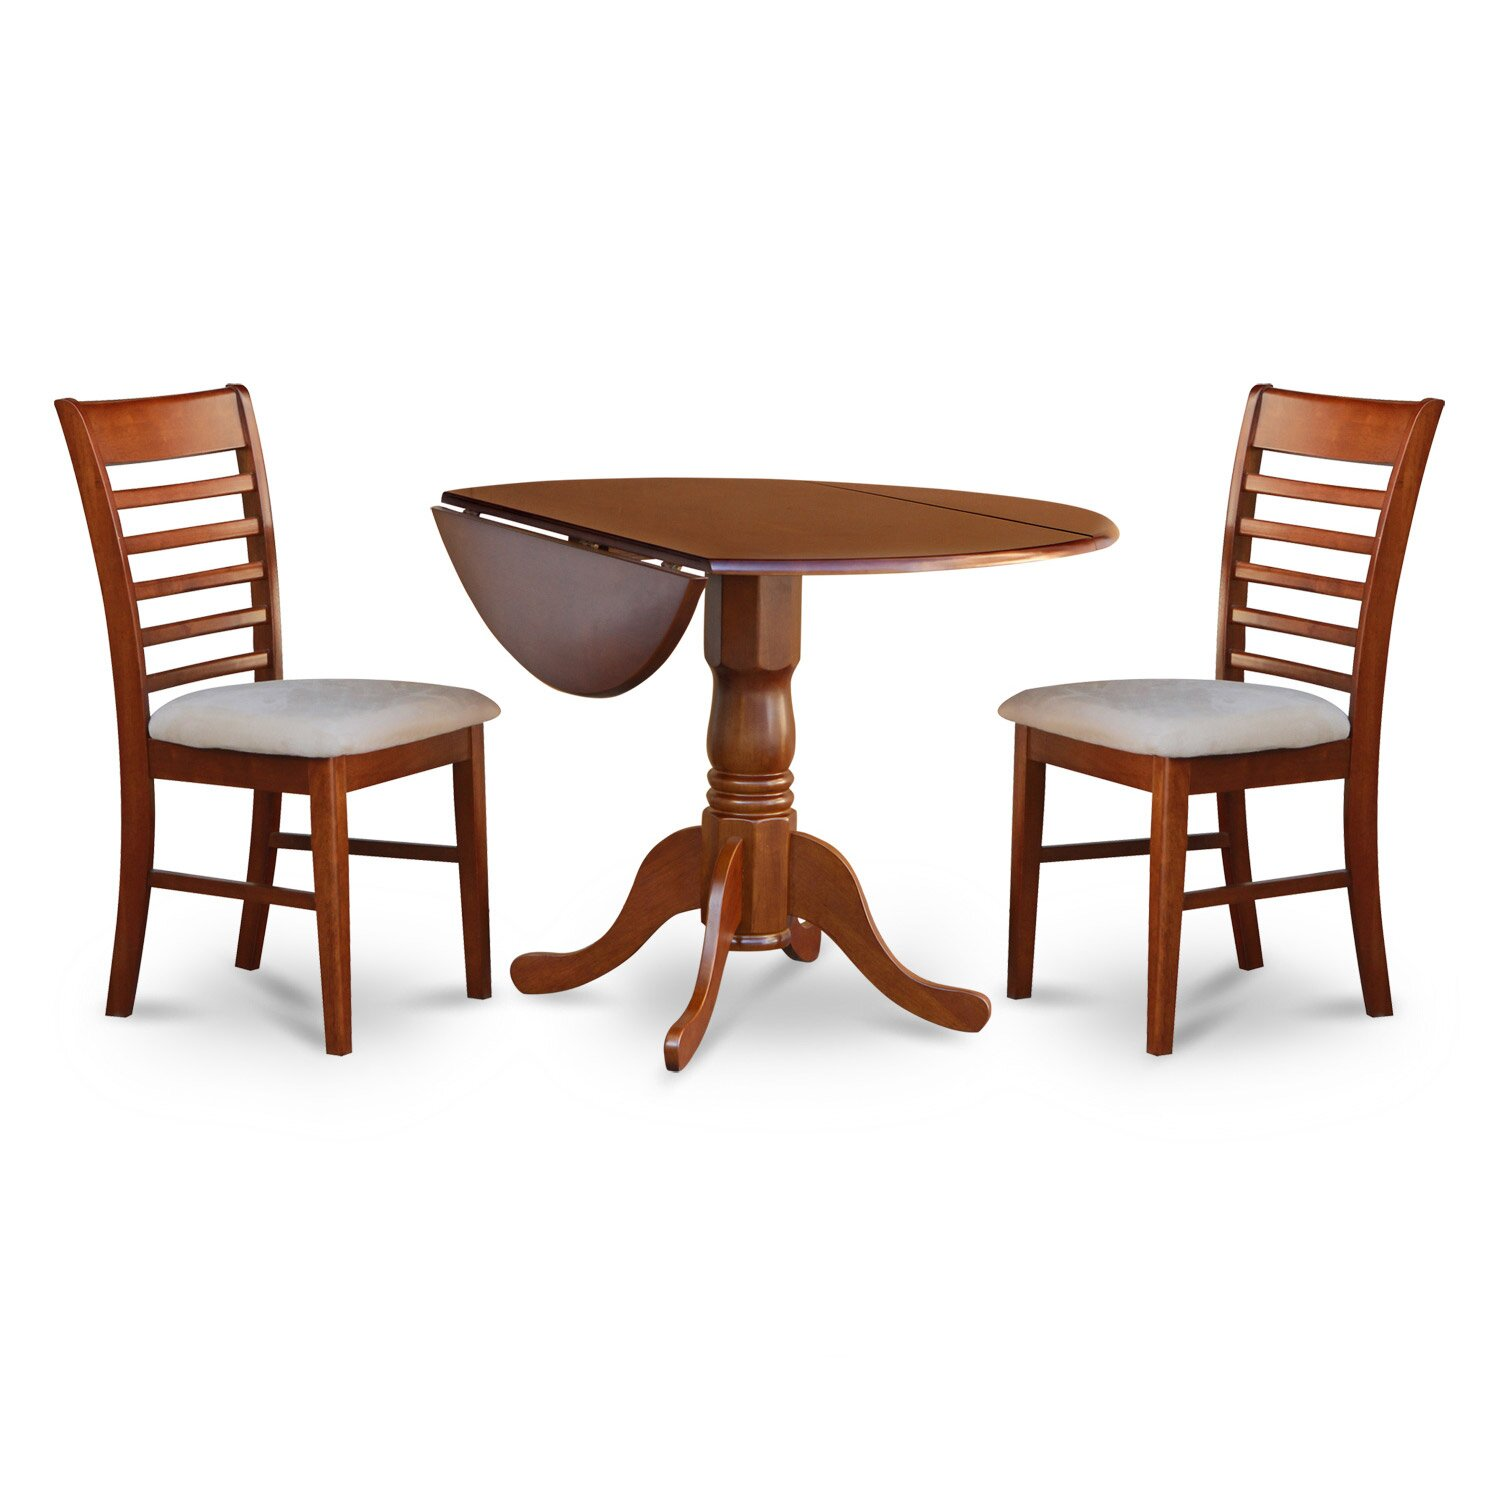 East West Dublin 3 Piece Dining Set & Reviews